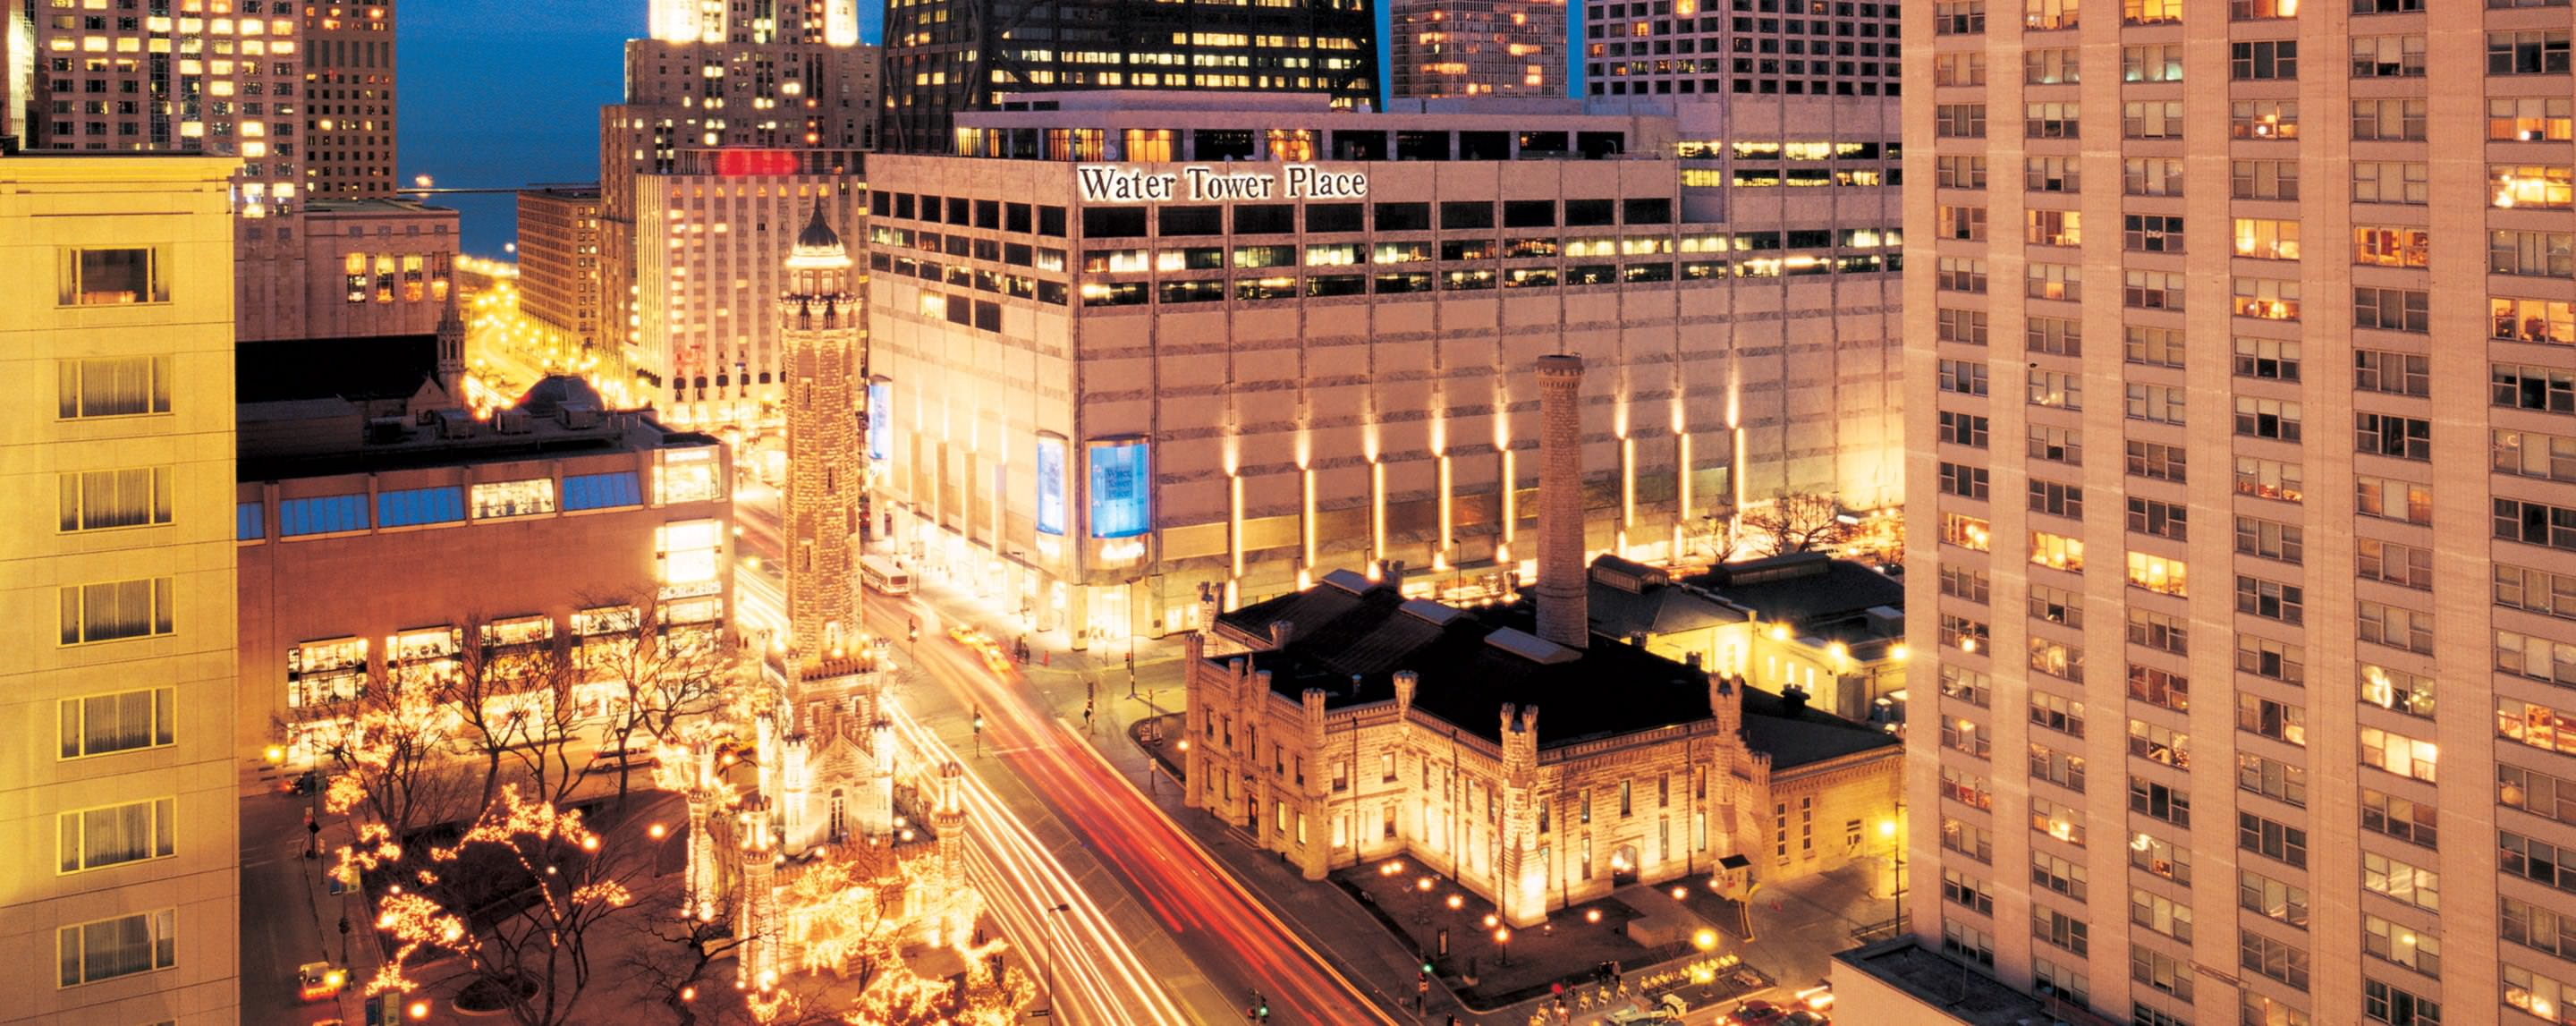 At night, an aerial view shows Water Tower Place brightly lit in downtown Chicago.